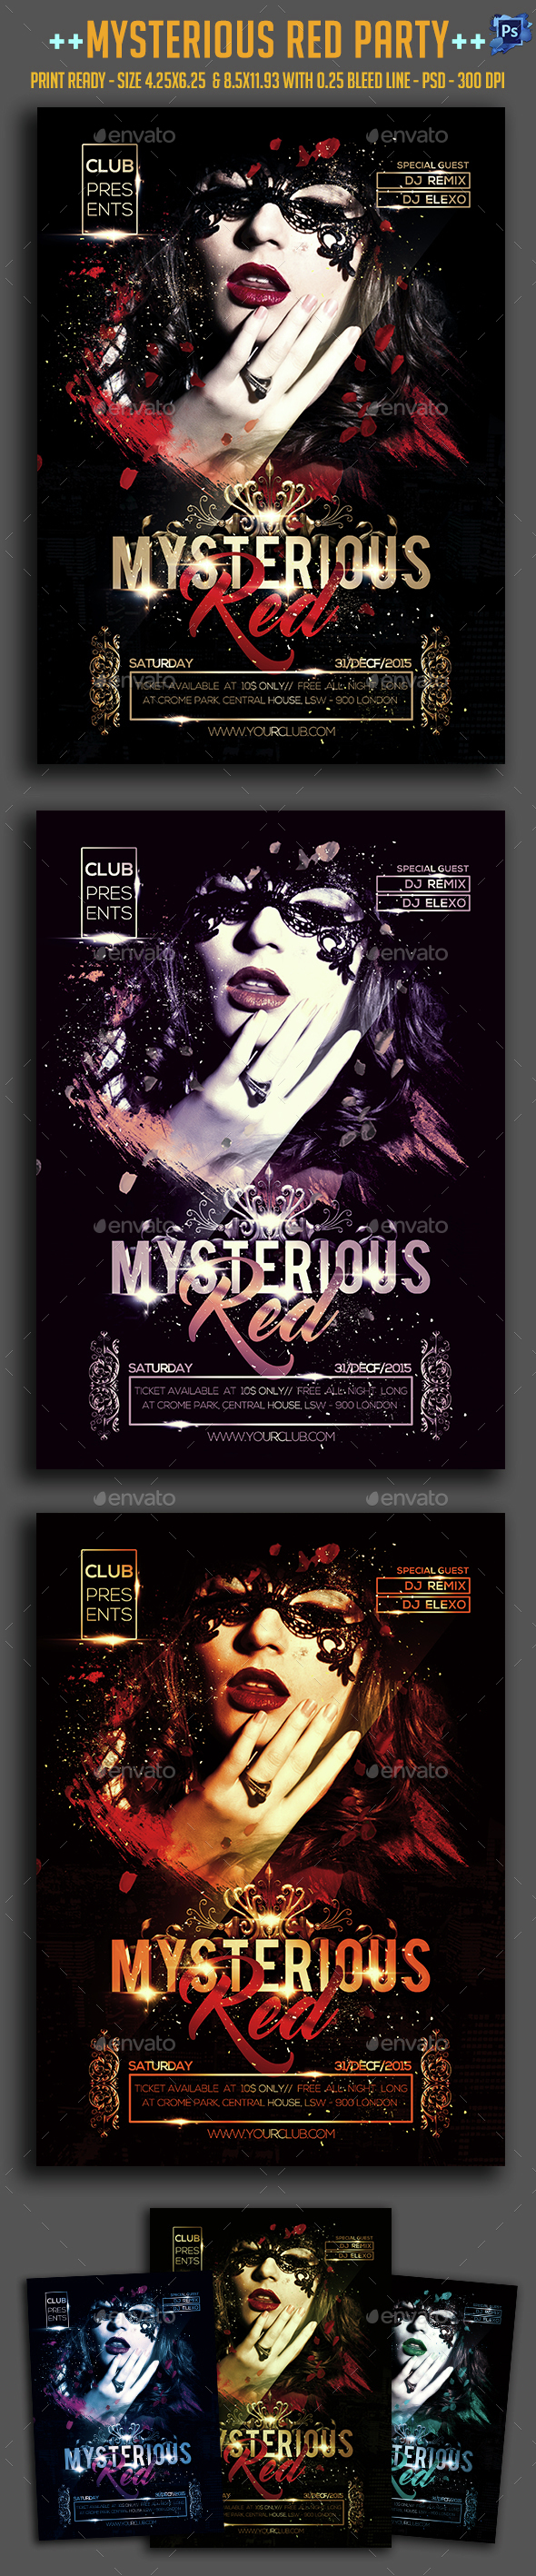 Mysterious Red Party Flyer  - Clubs & Parties Events